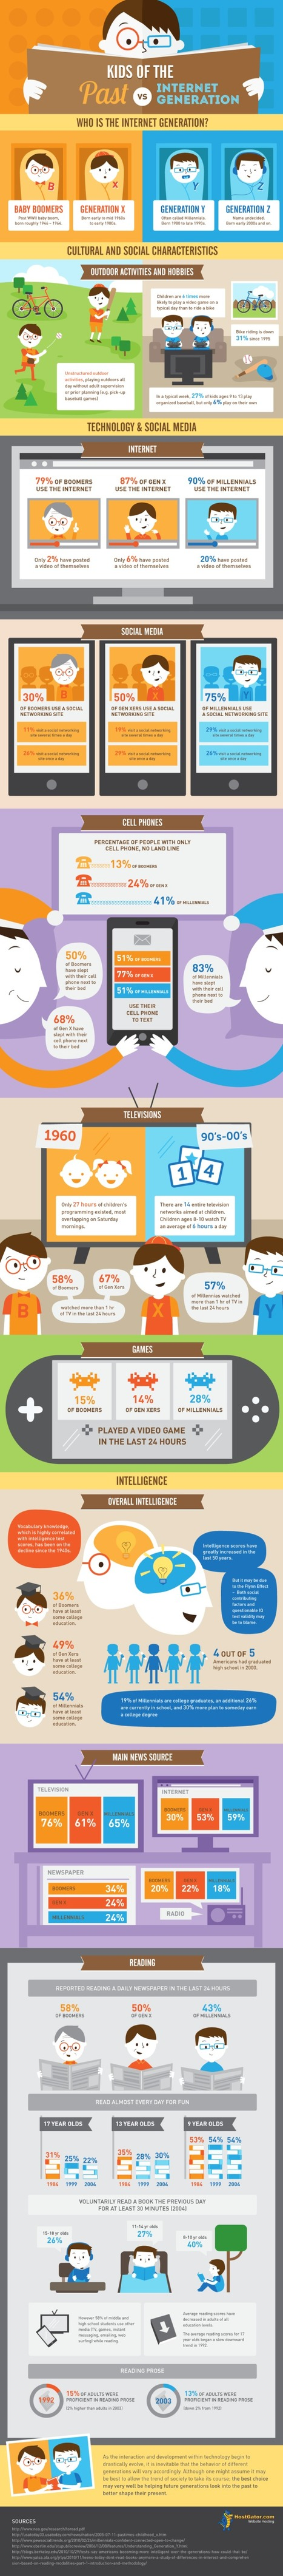 How 3 Different Generations Use The Internet - Edudemic | Social Media Useful Info | Scoop.it